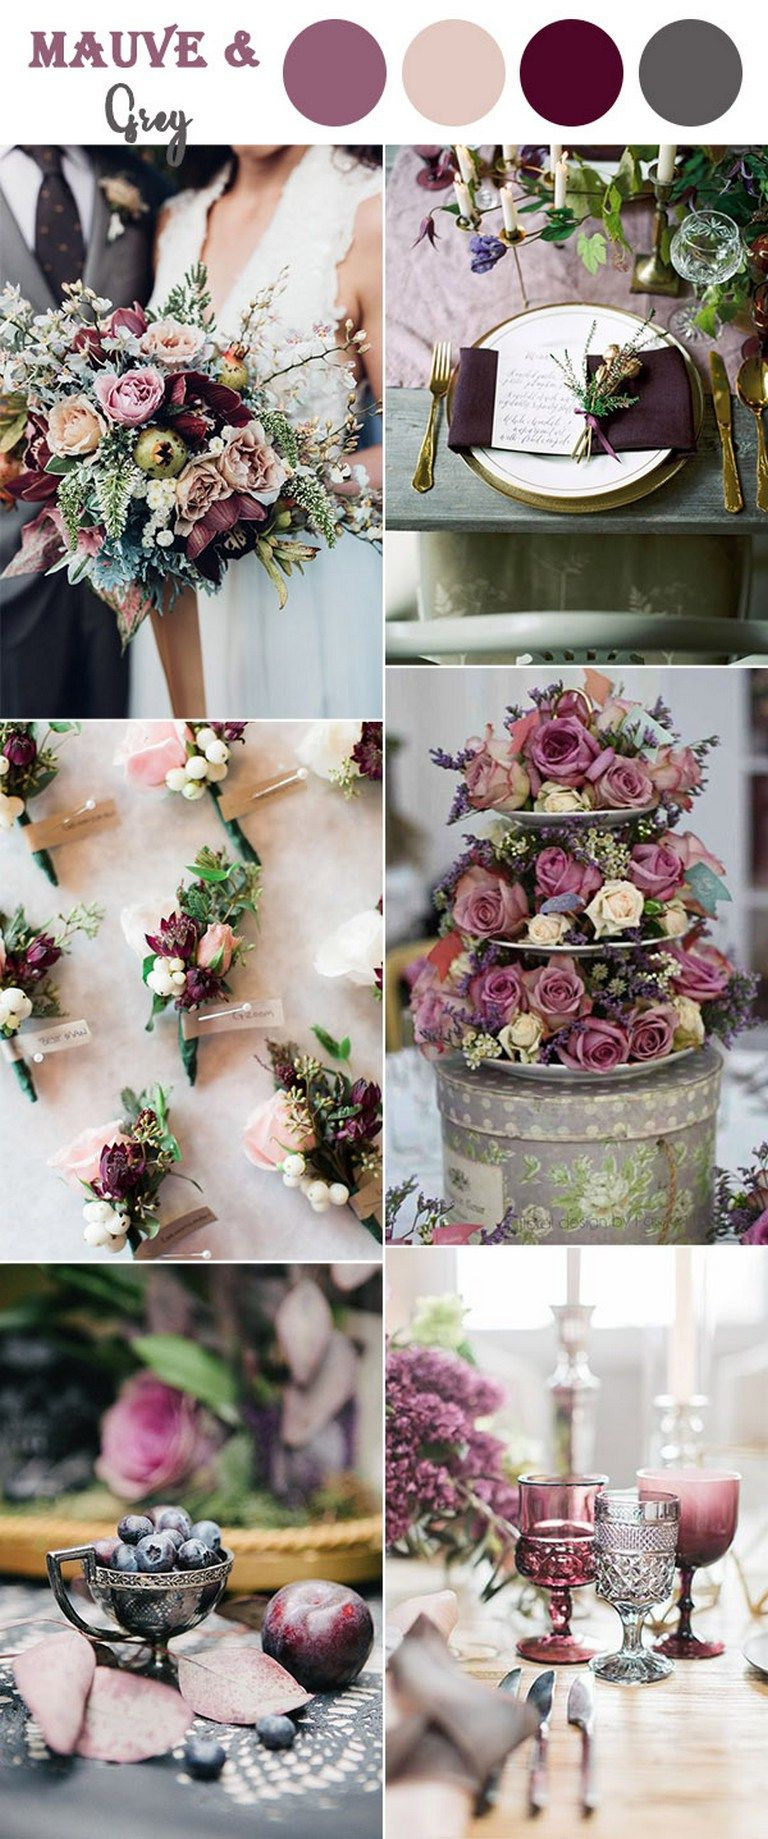 Best wedding dresses for registry office   Vintage Wedding Ideas with the Coolest Party  Vintage weddings